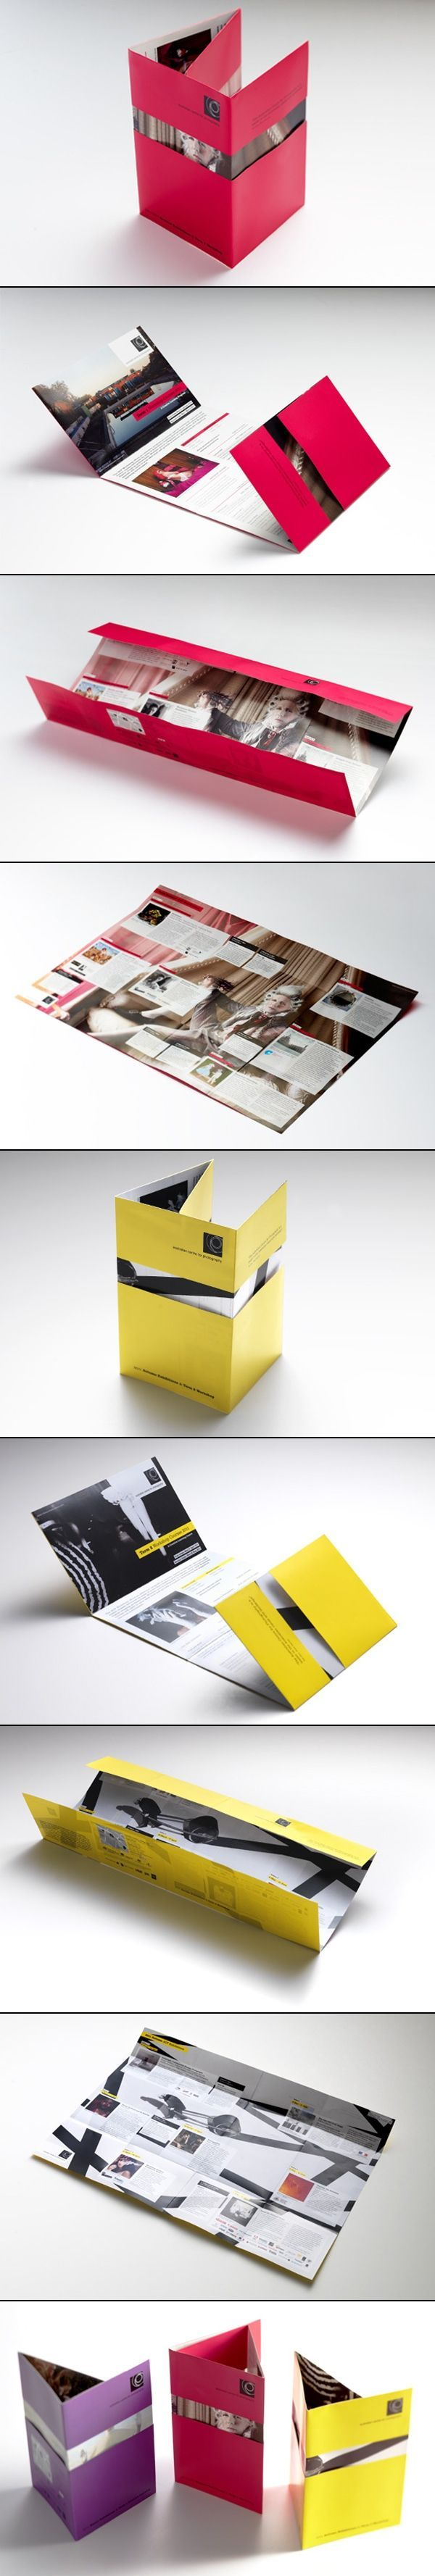 Interesting multi-fold poster brochure – nifty idea for revealing designs